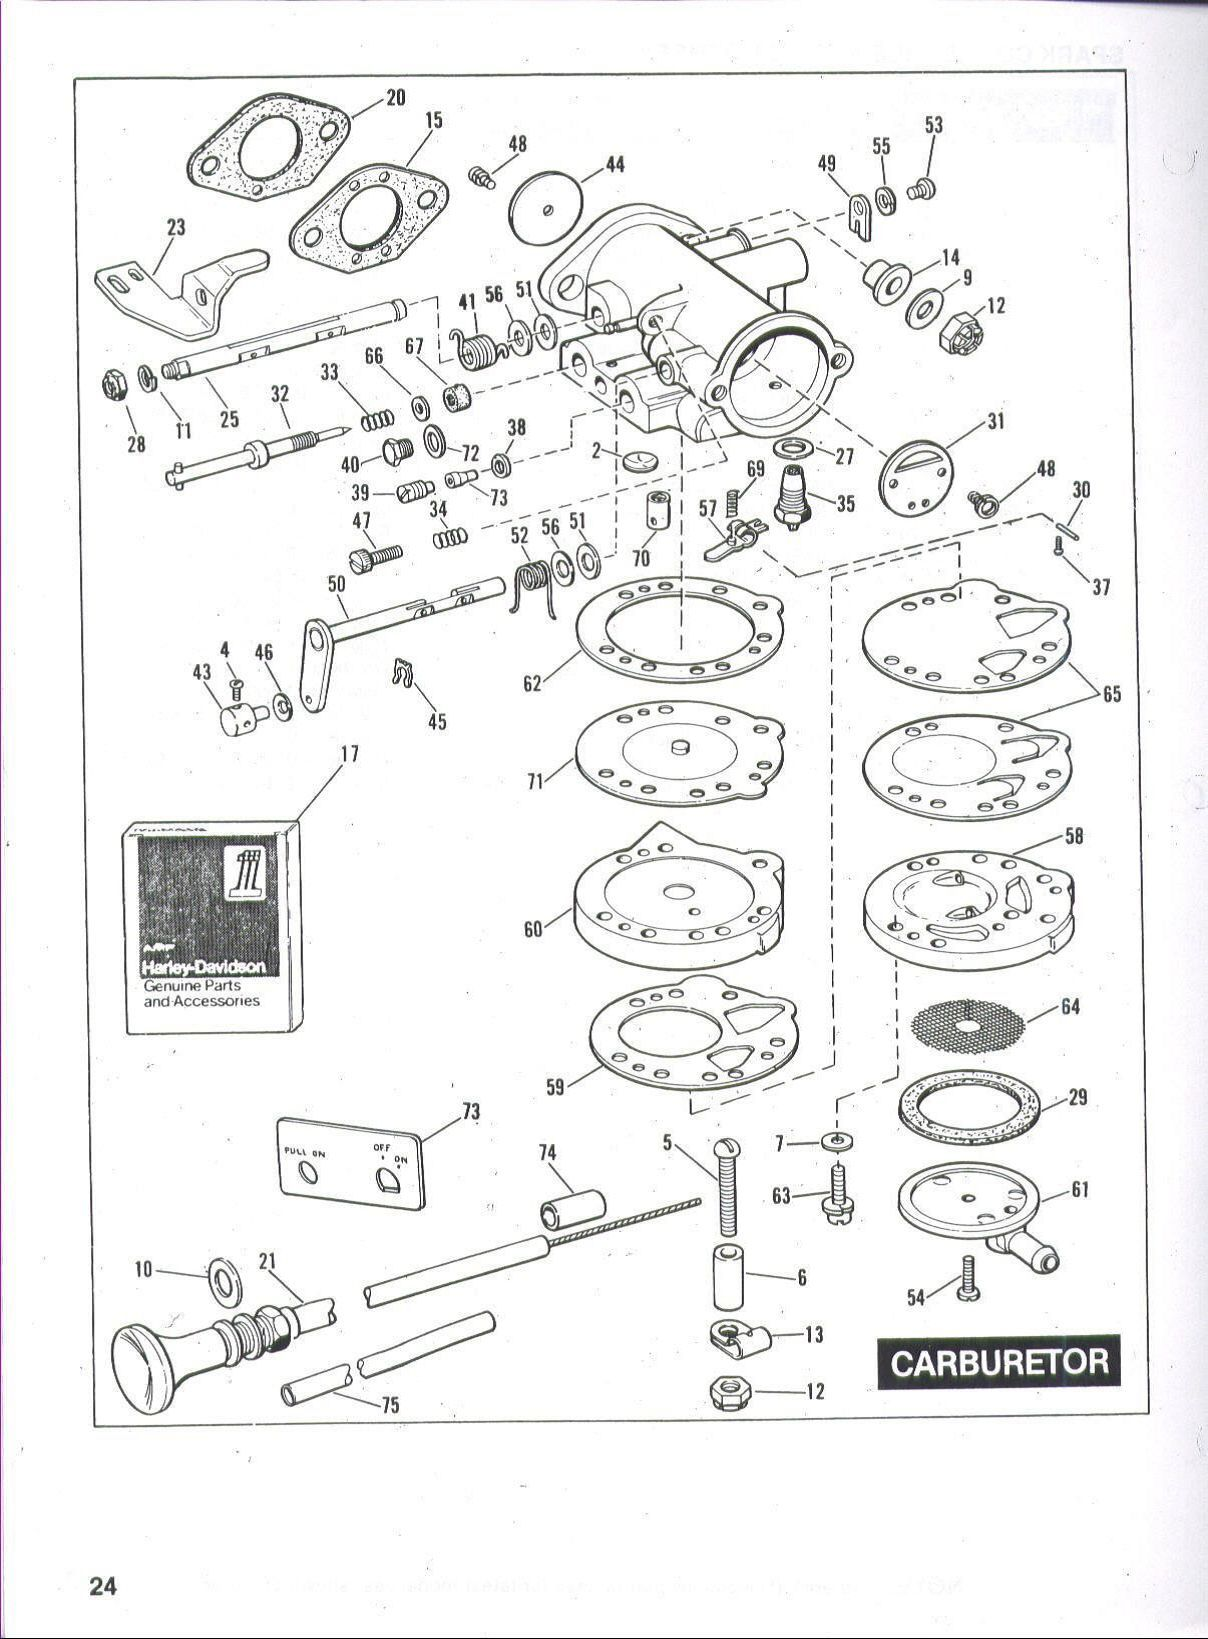 medium resolution of harley davidson carburetor diagram wiring diagram week 94 harley carburetor diagram